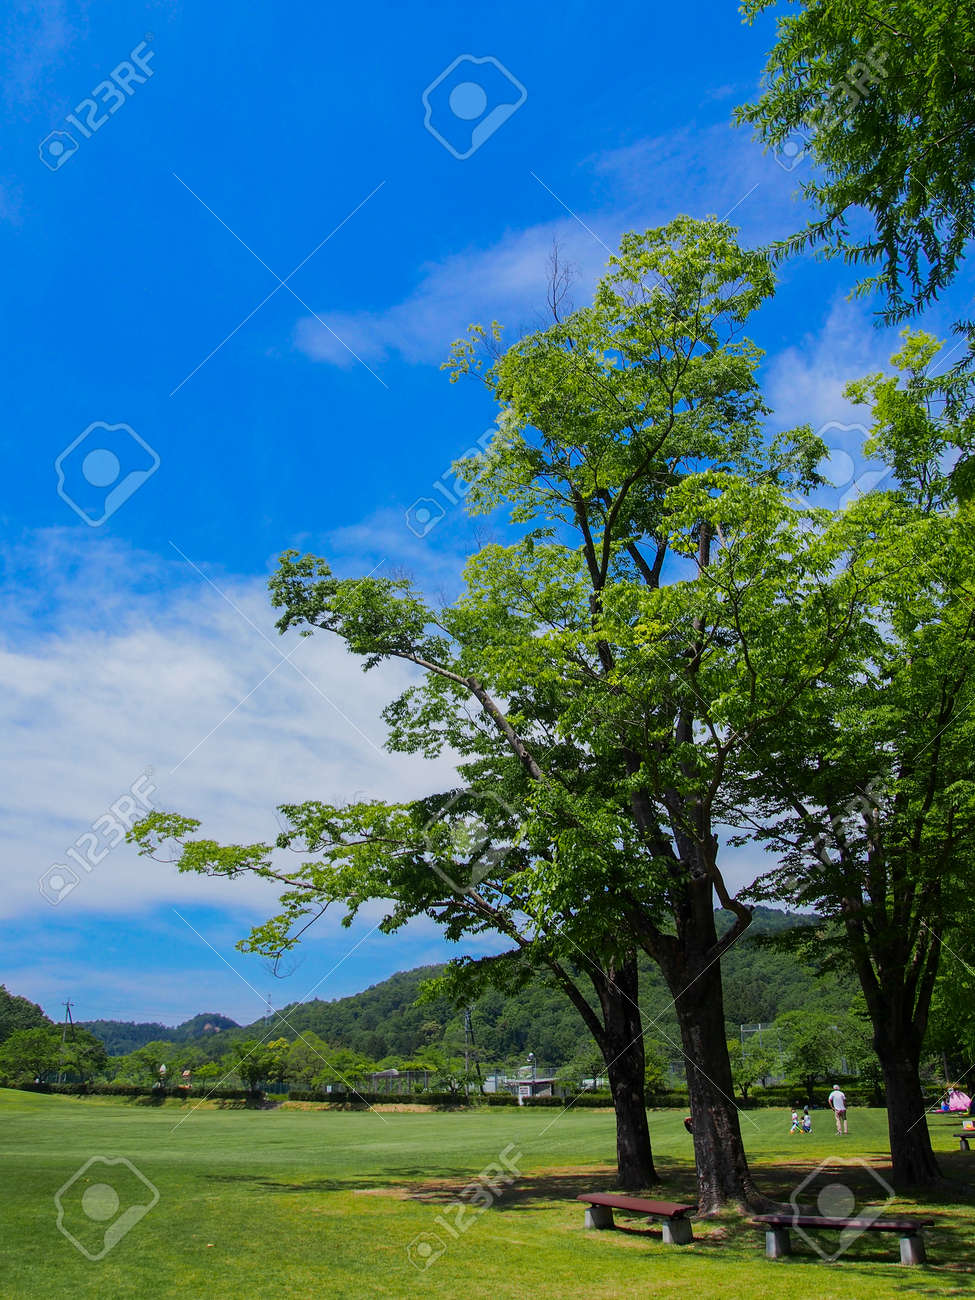 A sunny Japanese park with lots of greenery - 155758586